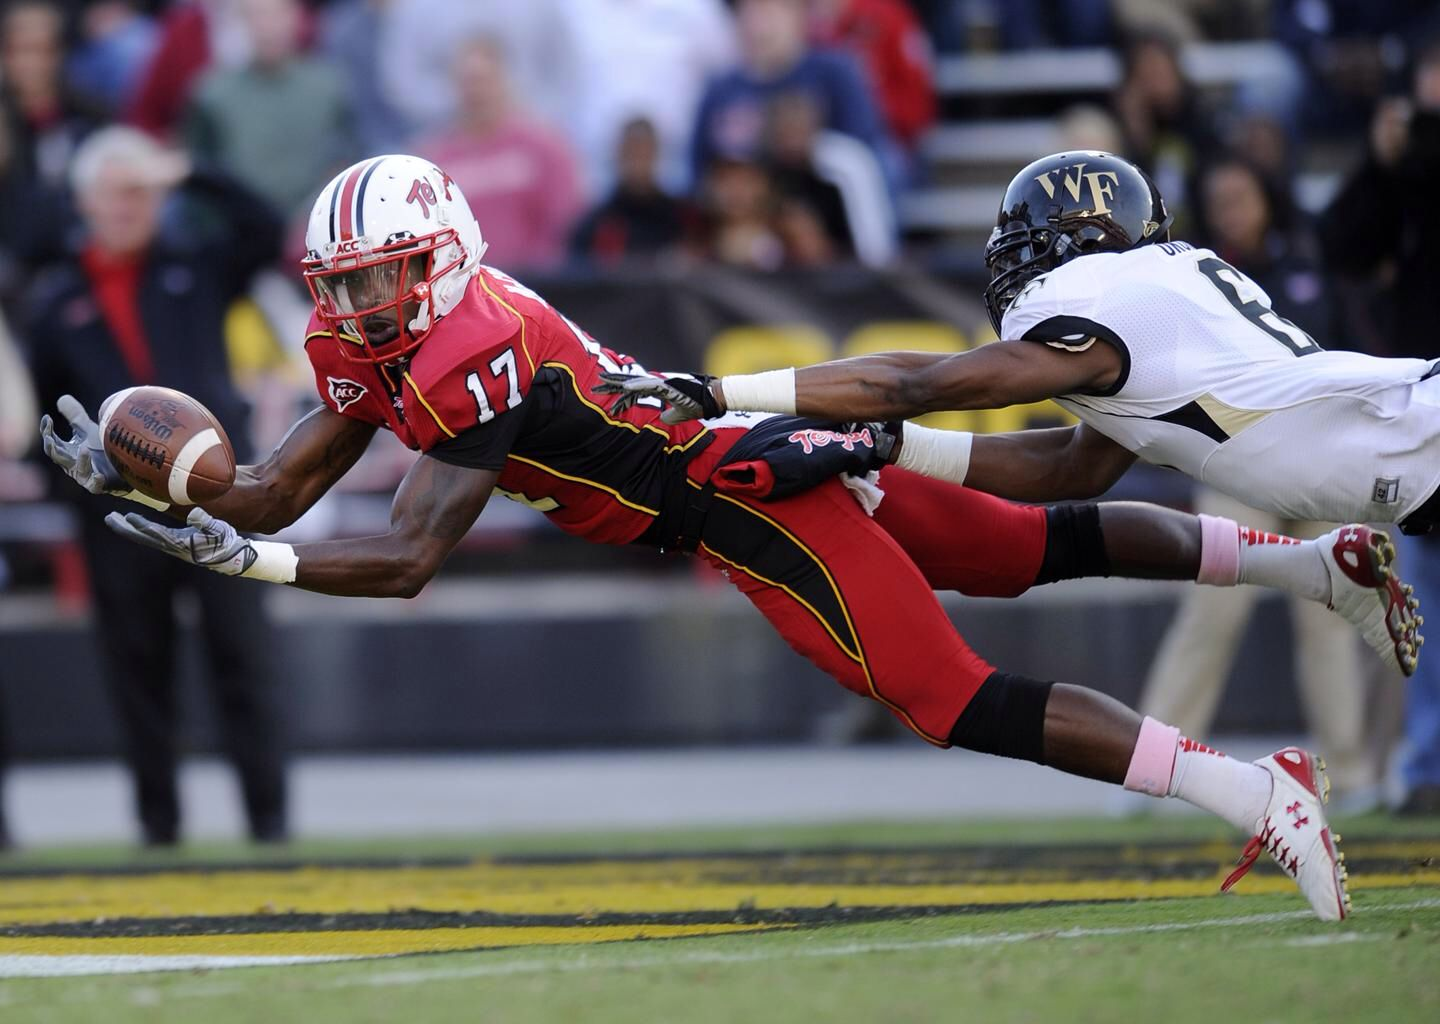 Maryland Terrapins Look At The Eyes And Hand Coordination American Football Maryland Terrapins Photo